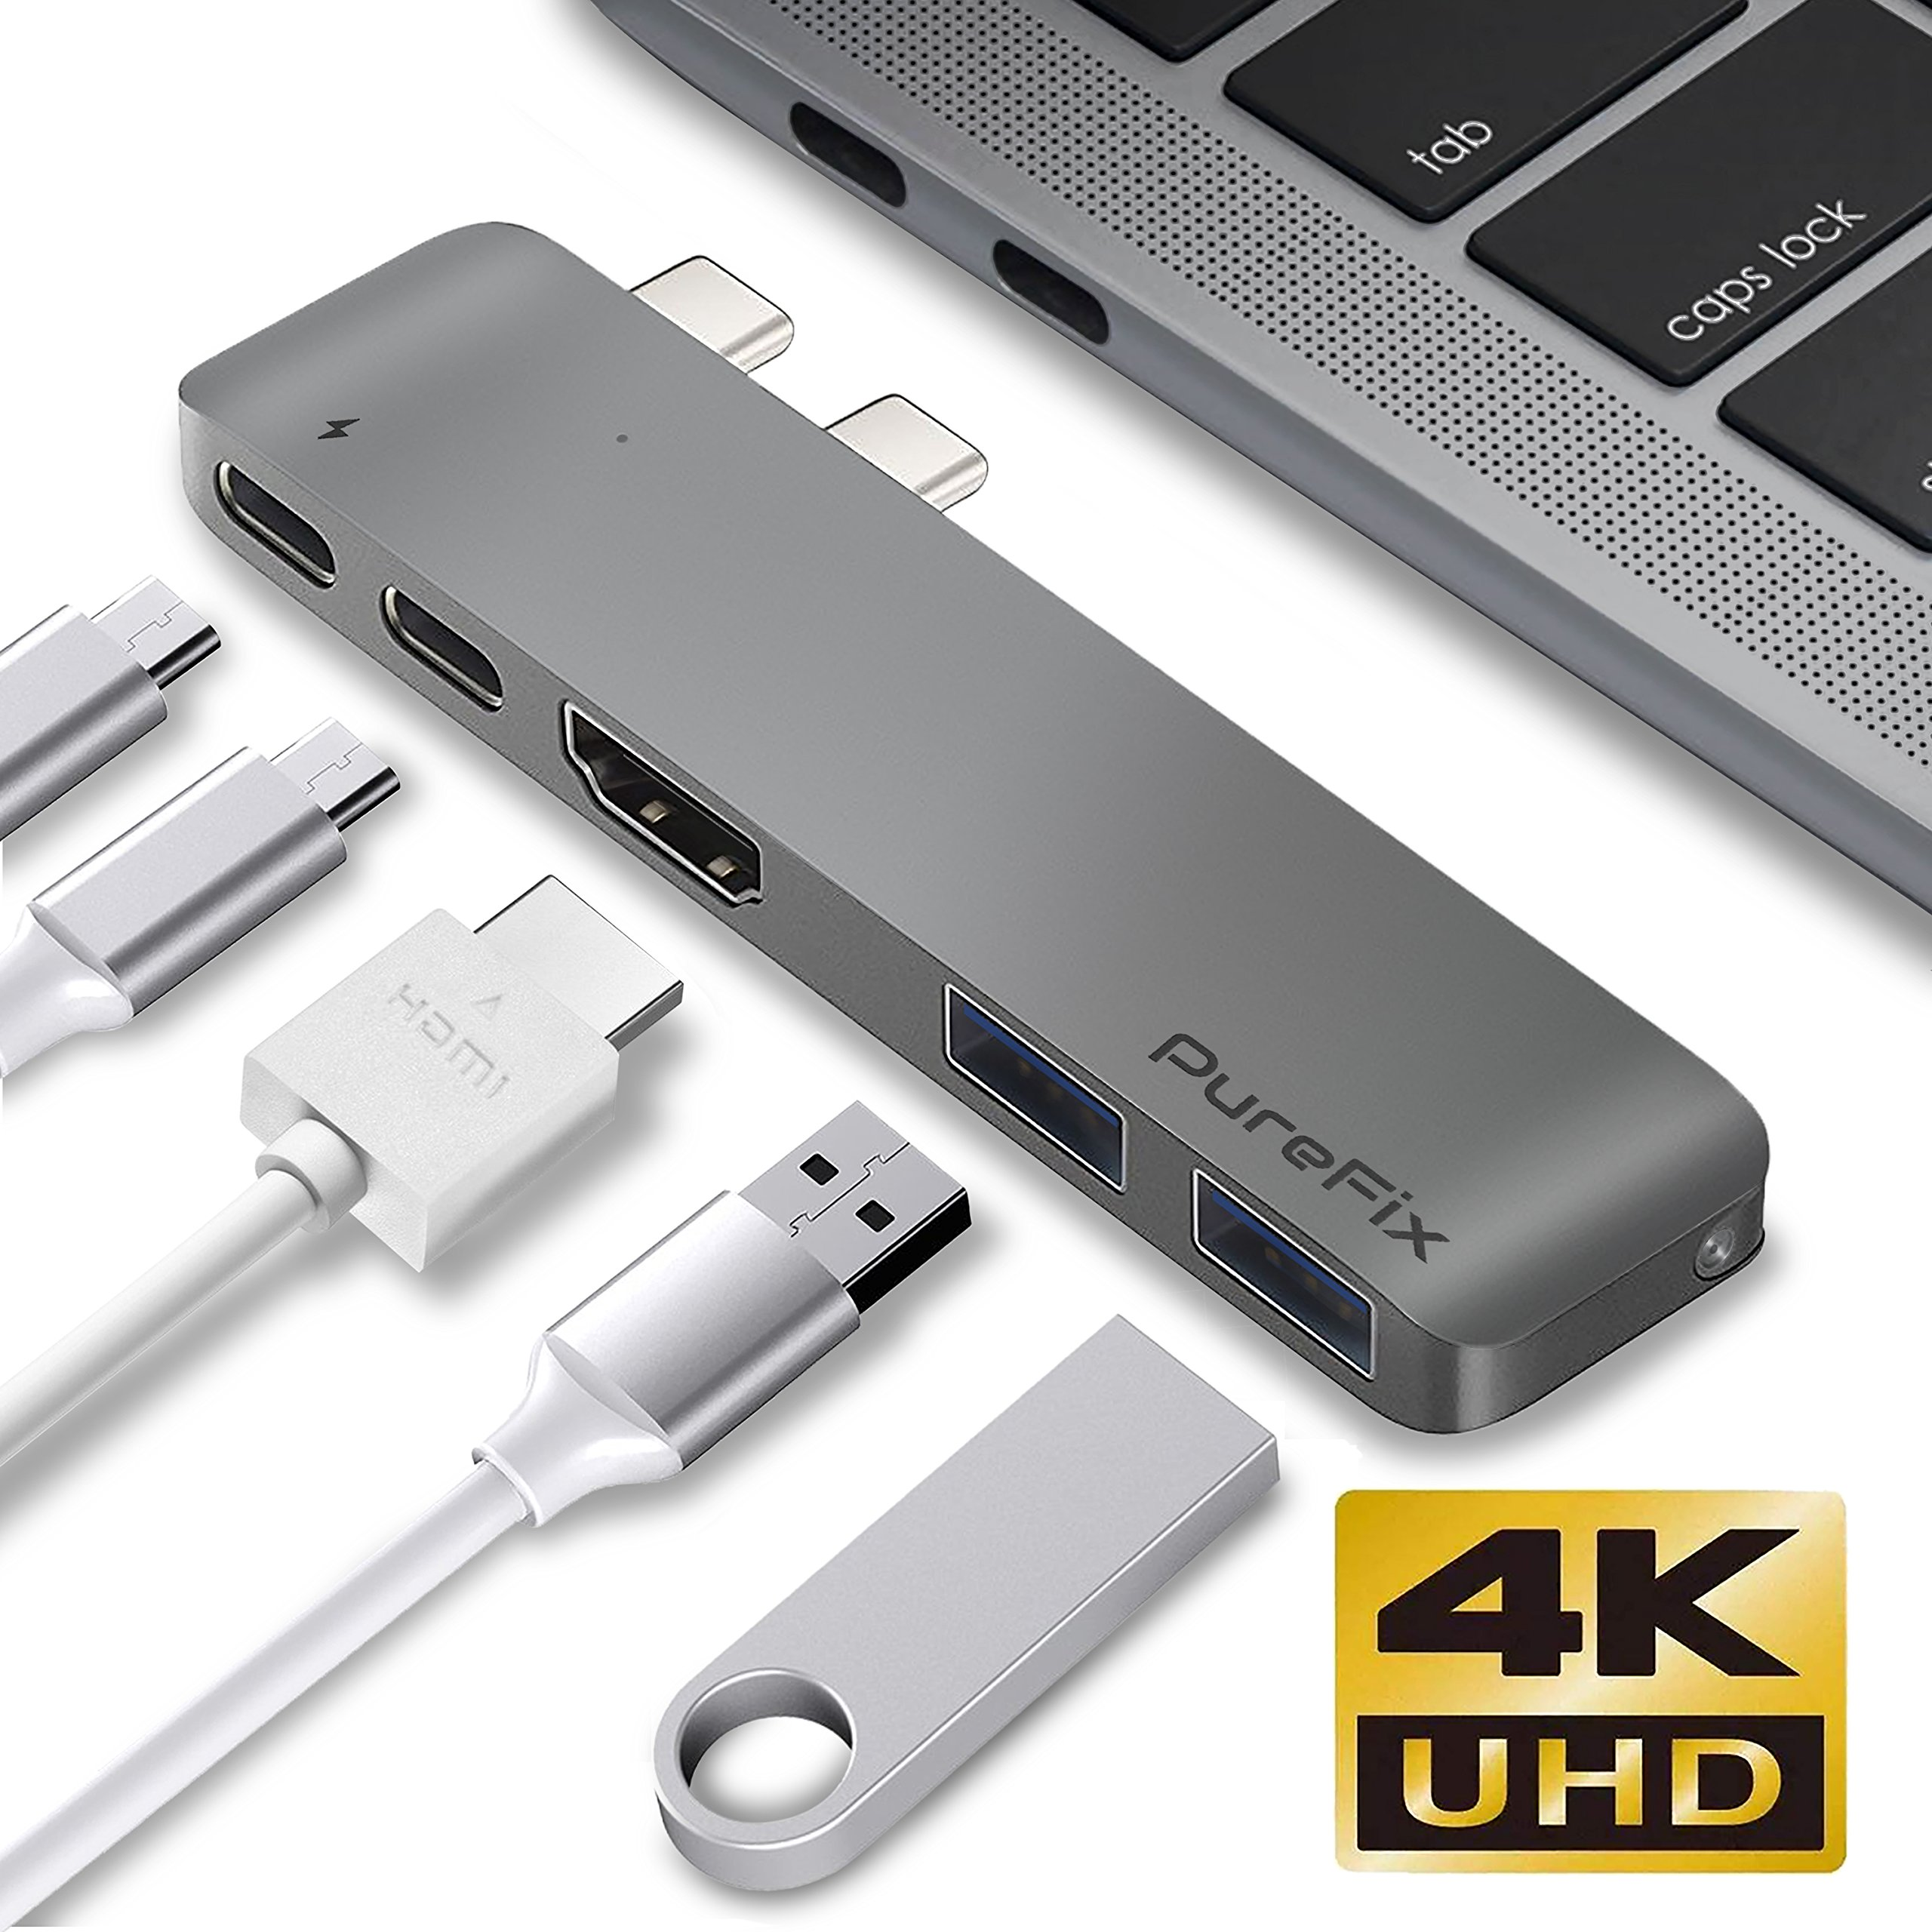 USB C Hub Adapter Dongle for MacBook Air 2018, MacBook Pro 2019/2018/2017/2016, Ultra Slim Type C Hub with 4K HDMI Out, 100W Power Delivery, 40Gbps Thunderbolt 3 5K@60Hz and 2 USB 3.1 (Space Gray) by Purefix